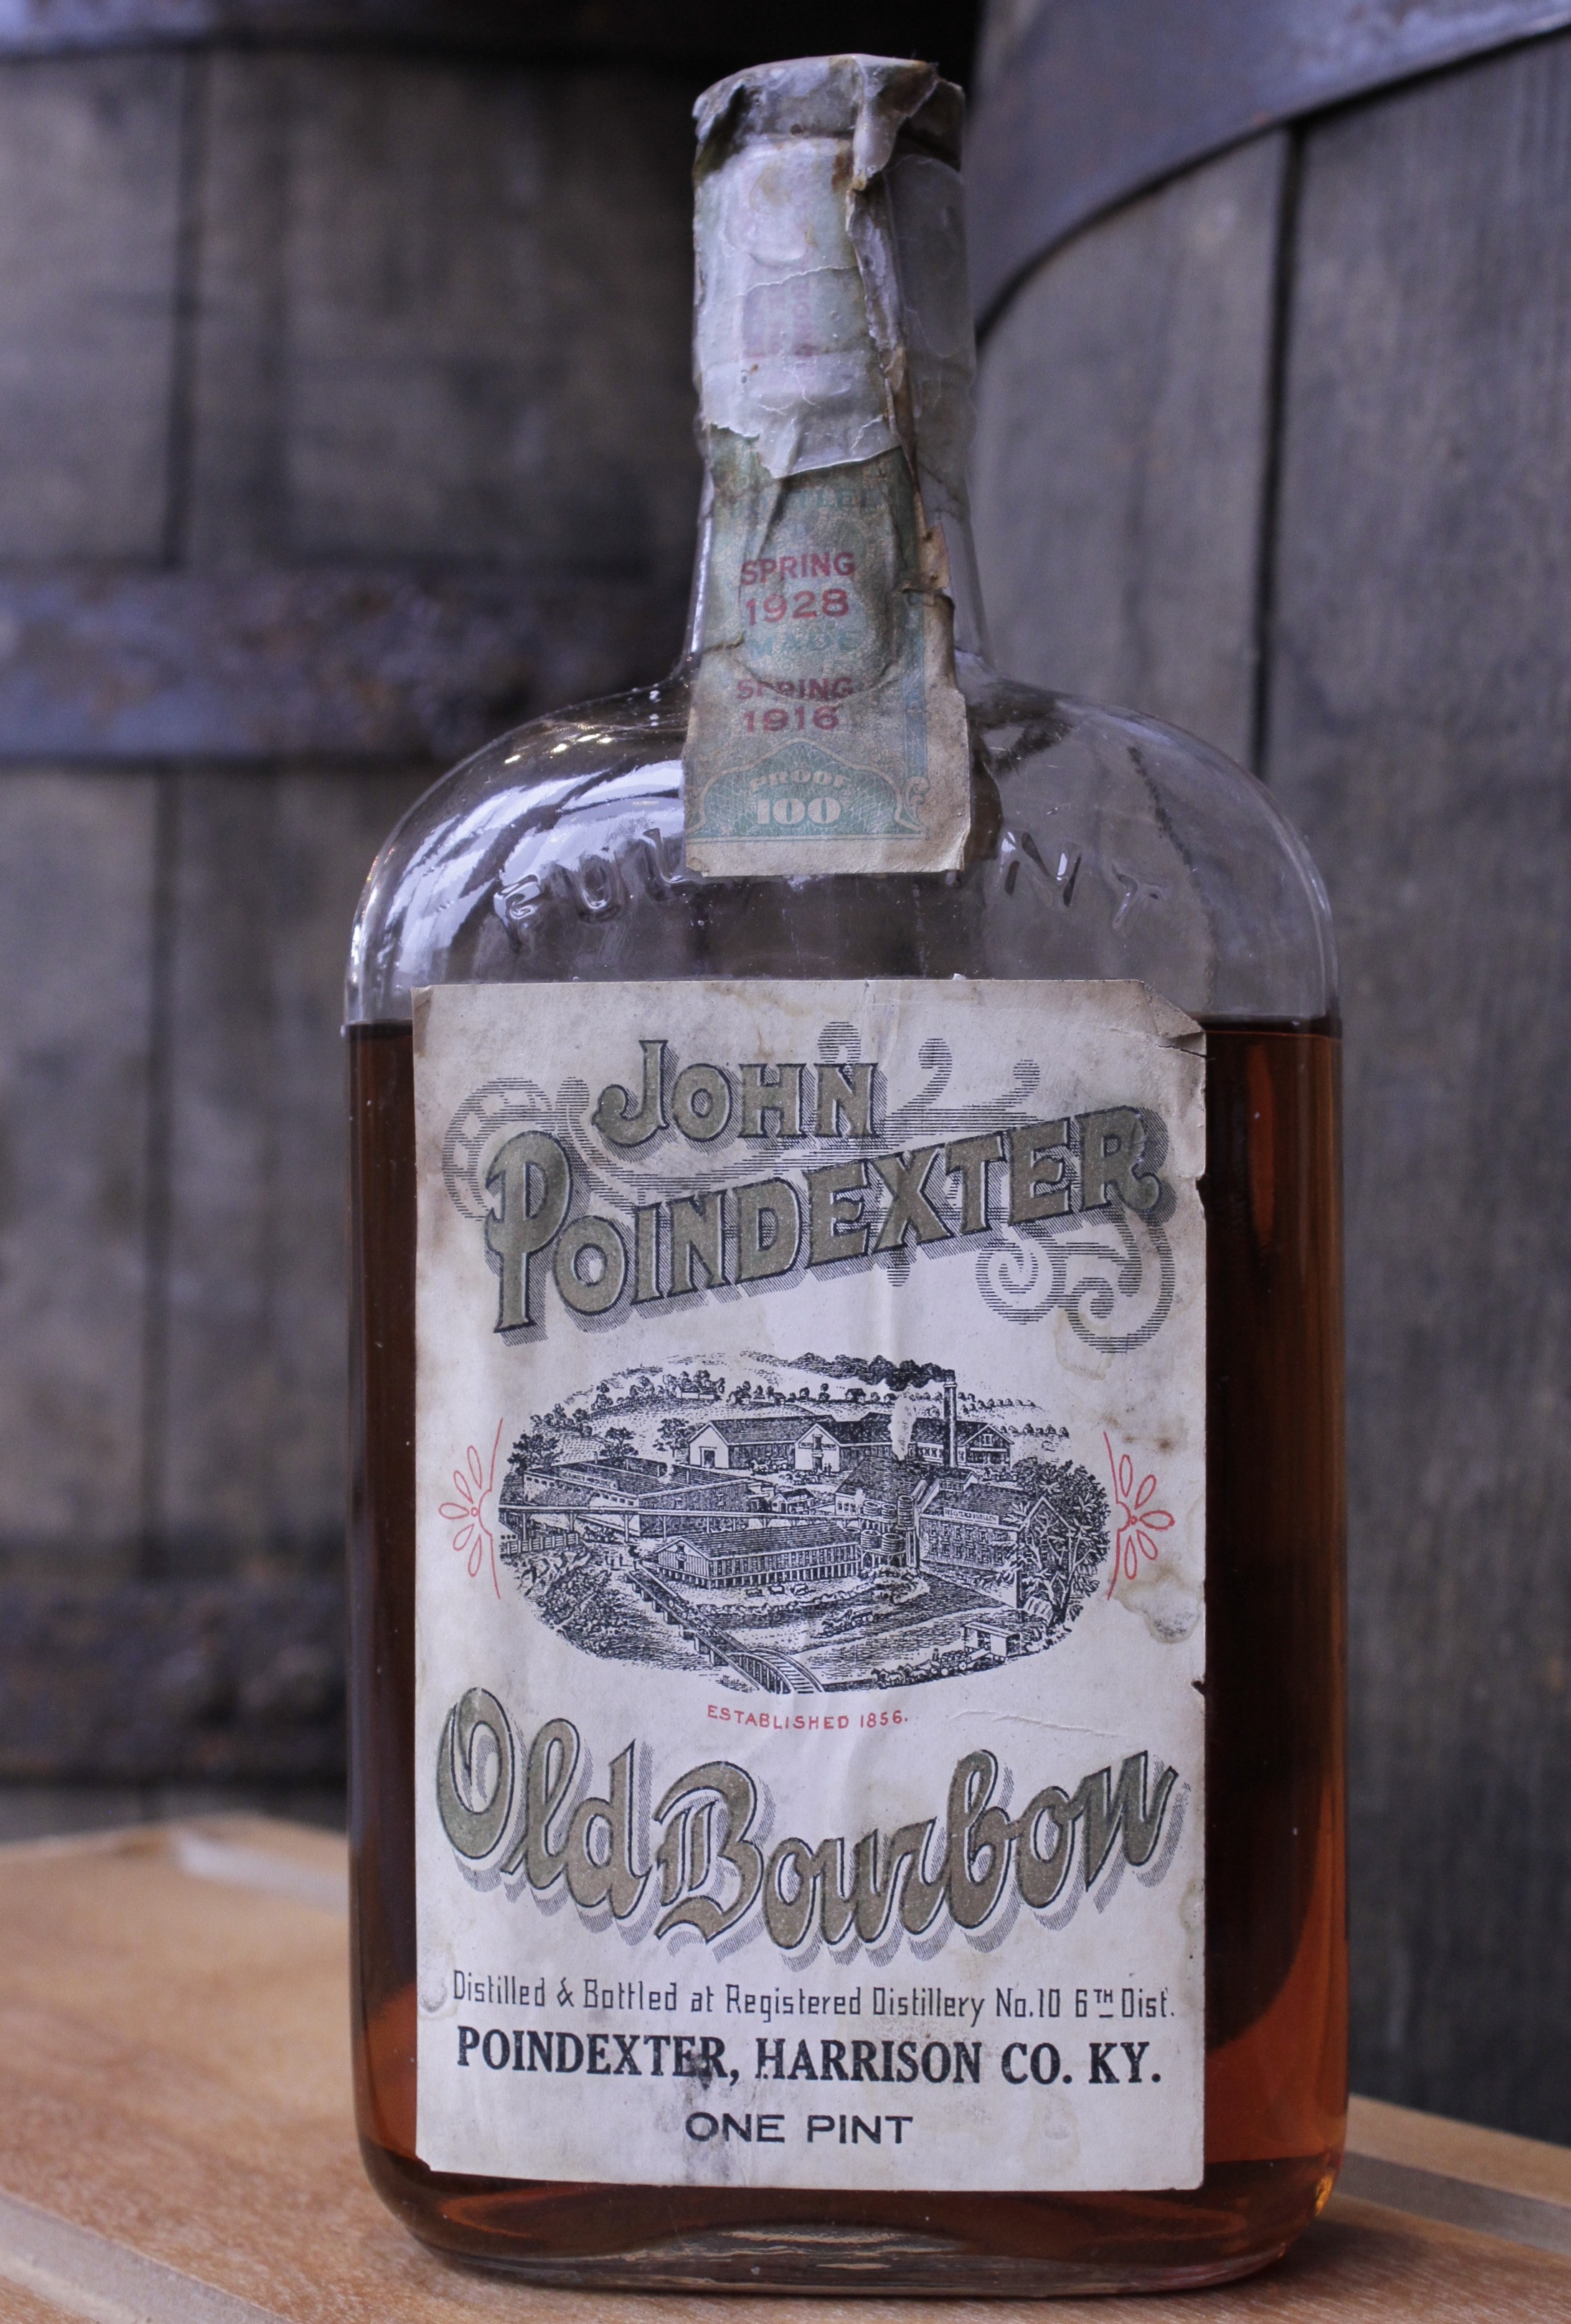 JOHN POINDEXTER OLD BOURBON    About the Product   One pint of Kentucky bourbon (100 proof), aged 12 years, bottled in bond. Distilled in spring 1916** by Wiglesworth Bros. Co. Bottled in spring 1928** by Joseph Wolf.  Introduced by John Poindexter in the 1850s and later acquired by the Wiglesworth Bros. Co., this brand of sour mash bourbon remained in production until Prohibition.   About the Distillery   6th Dist., RD #10, Wiglesworth Bros. Co. (1869 – 1919). Harrison County, Kentucky, USA.  Located on the South Fork of the Licking River four miles northwest of Cynthiana, this distillery was built in 1856 by John Poindexter. In 1869 the Wiglesworth family acquired it, tore it down and rebuilt it. By 1910 the mashing capacity had been increased to 300 bushels per day, and there were three bonded warehouses with a storage capacity for 20,000 barrels. In the late 1910s the officers were J. M. Wiglesworth, president and W. T. Wiglesworth, secretary-treasurer. Products included Old G. W. Taylor, Poindexter Bourbon, and Wiglesworth Bros. Sweet Mash. The distillery closed at Prohibition.  In 1924 all the whiskey in storage was transferred to the concentration warehouses of James E. Pepper & Co., a facility in Lexington that had been leased in 1907 for 20 years by Joseph Wolf of Chicago, where it was bottled for medicinal spirits.